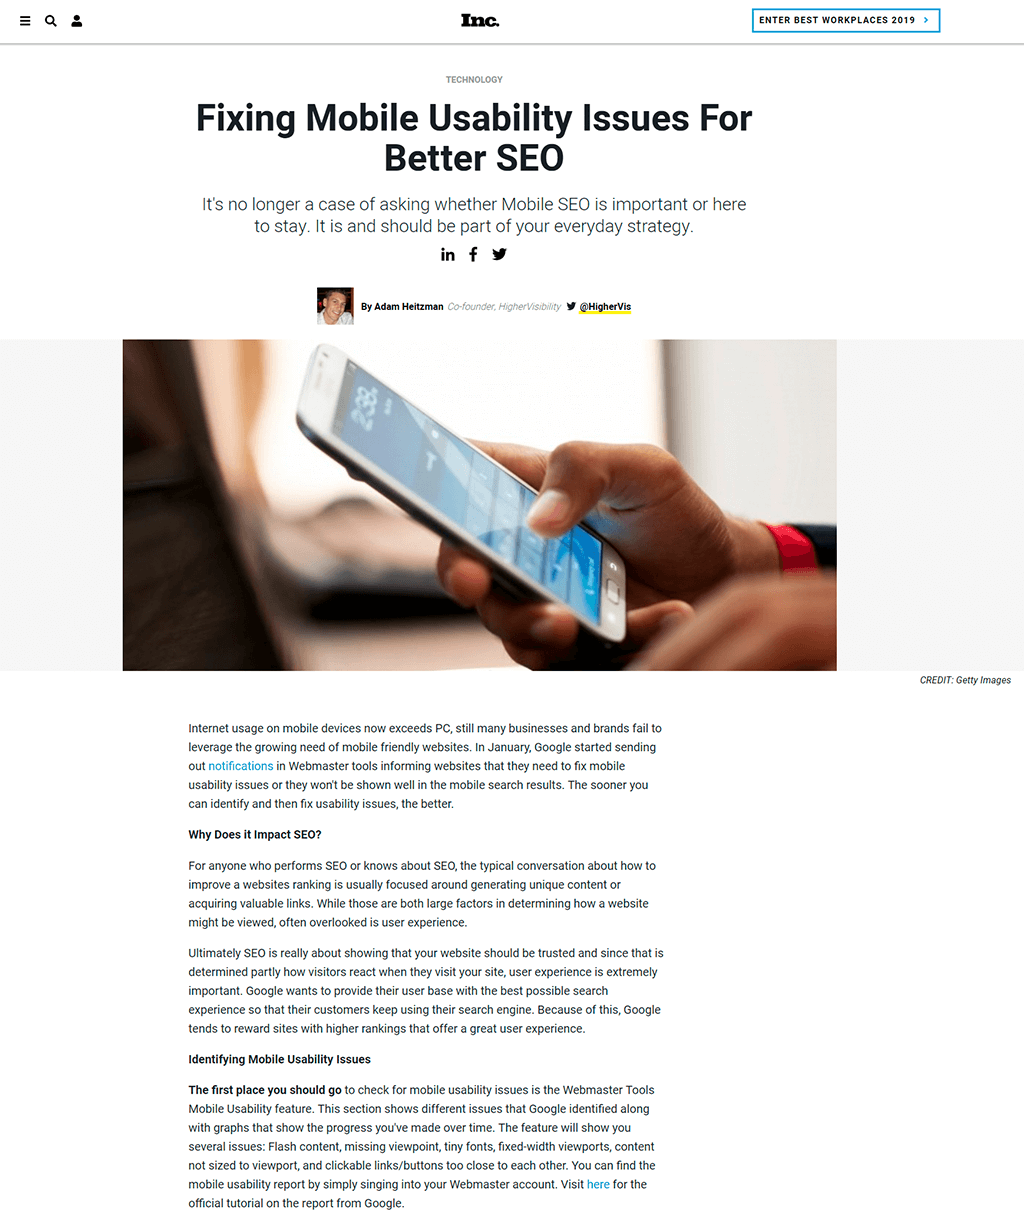 Inc. website article about Fixing Mobile Usability Issues for Better SEO. Showing title, image and content.